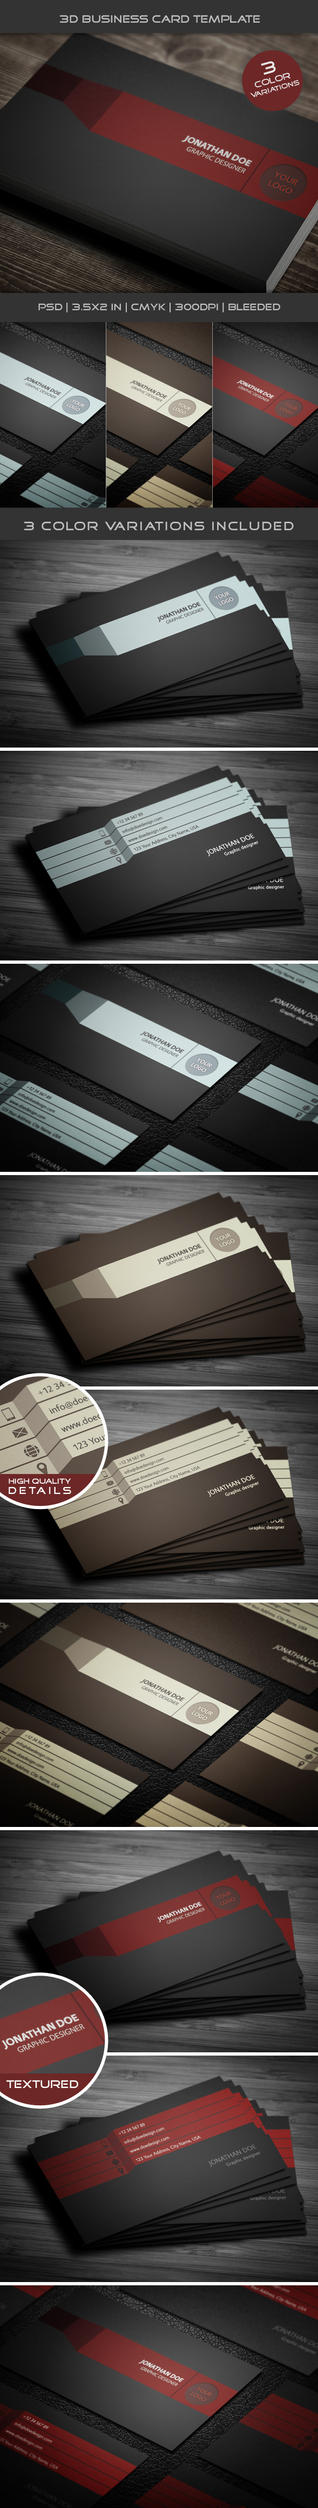 3D Business Card Template 02 by petumDesign